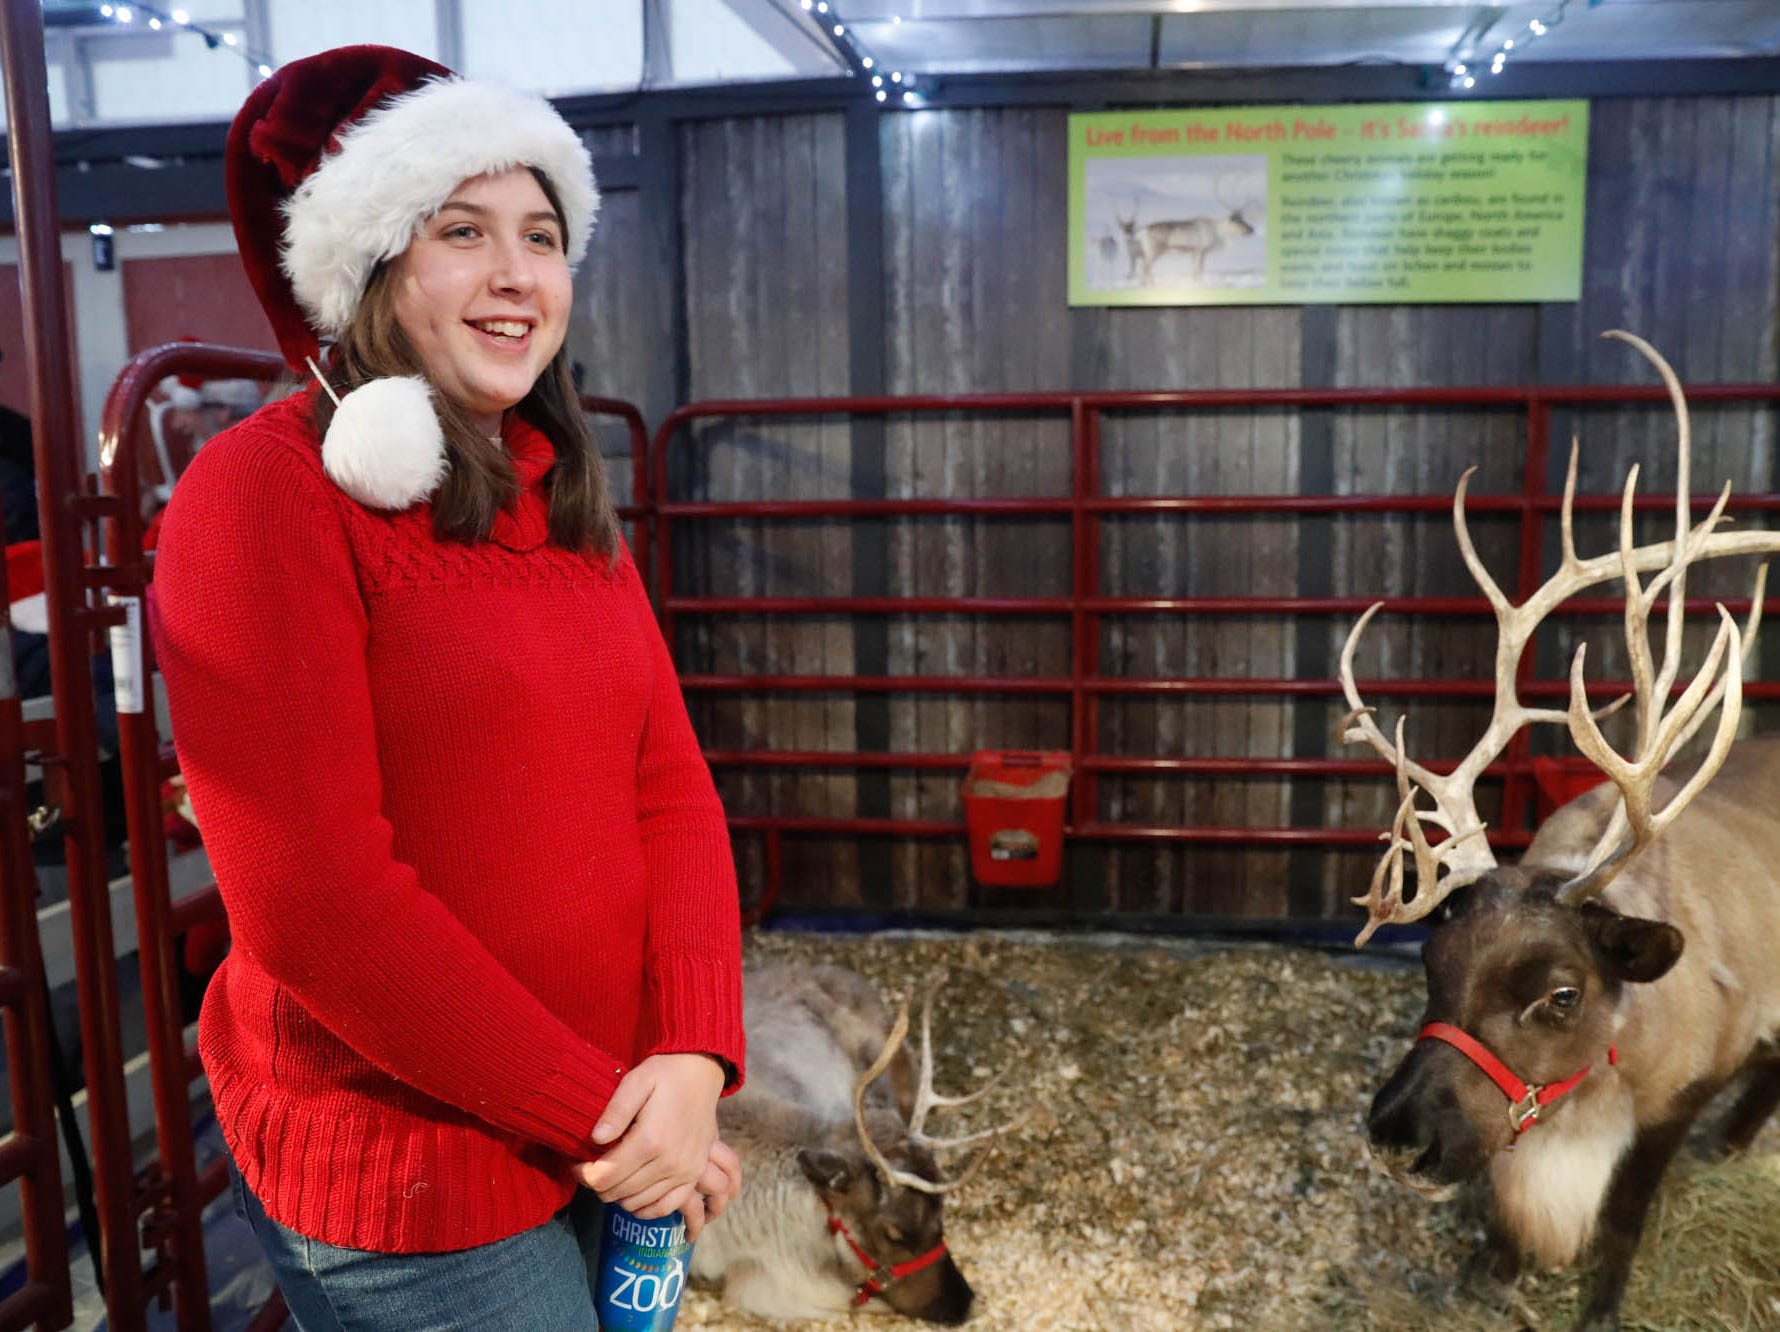 Kelly Zeiser introduces guests to reindeer during Christmas at the Indianapolis Zoo on Wednesday, Dec. 19, 2018.